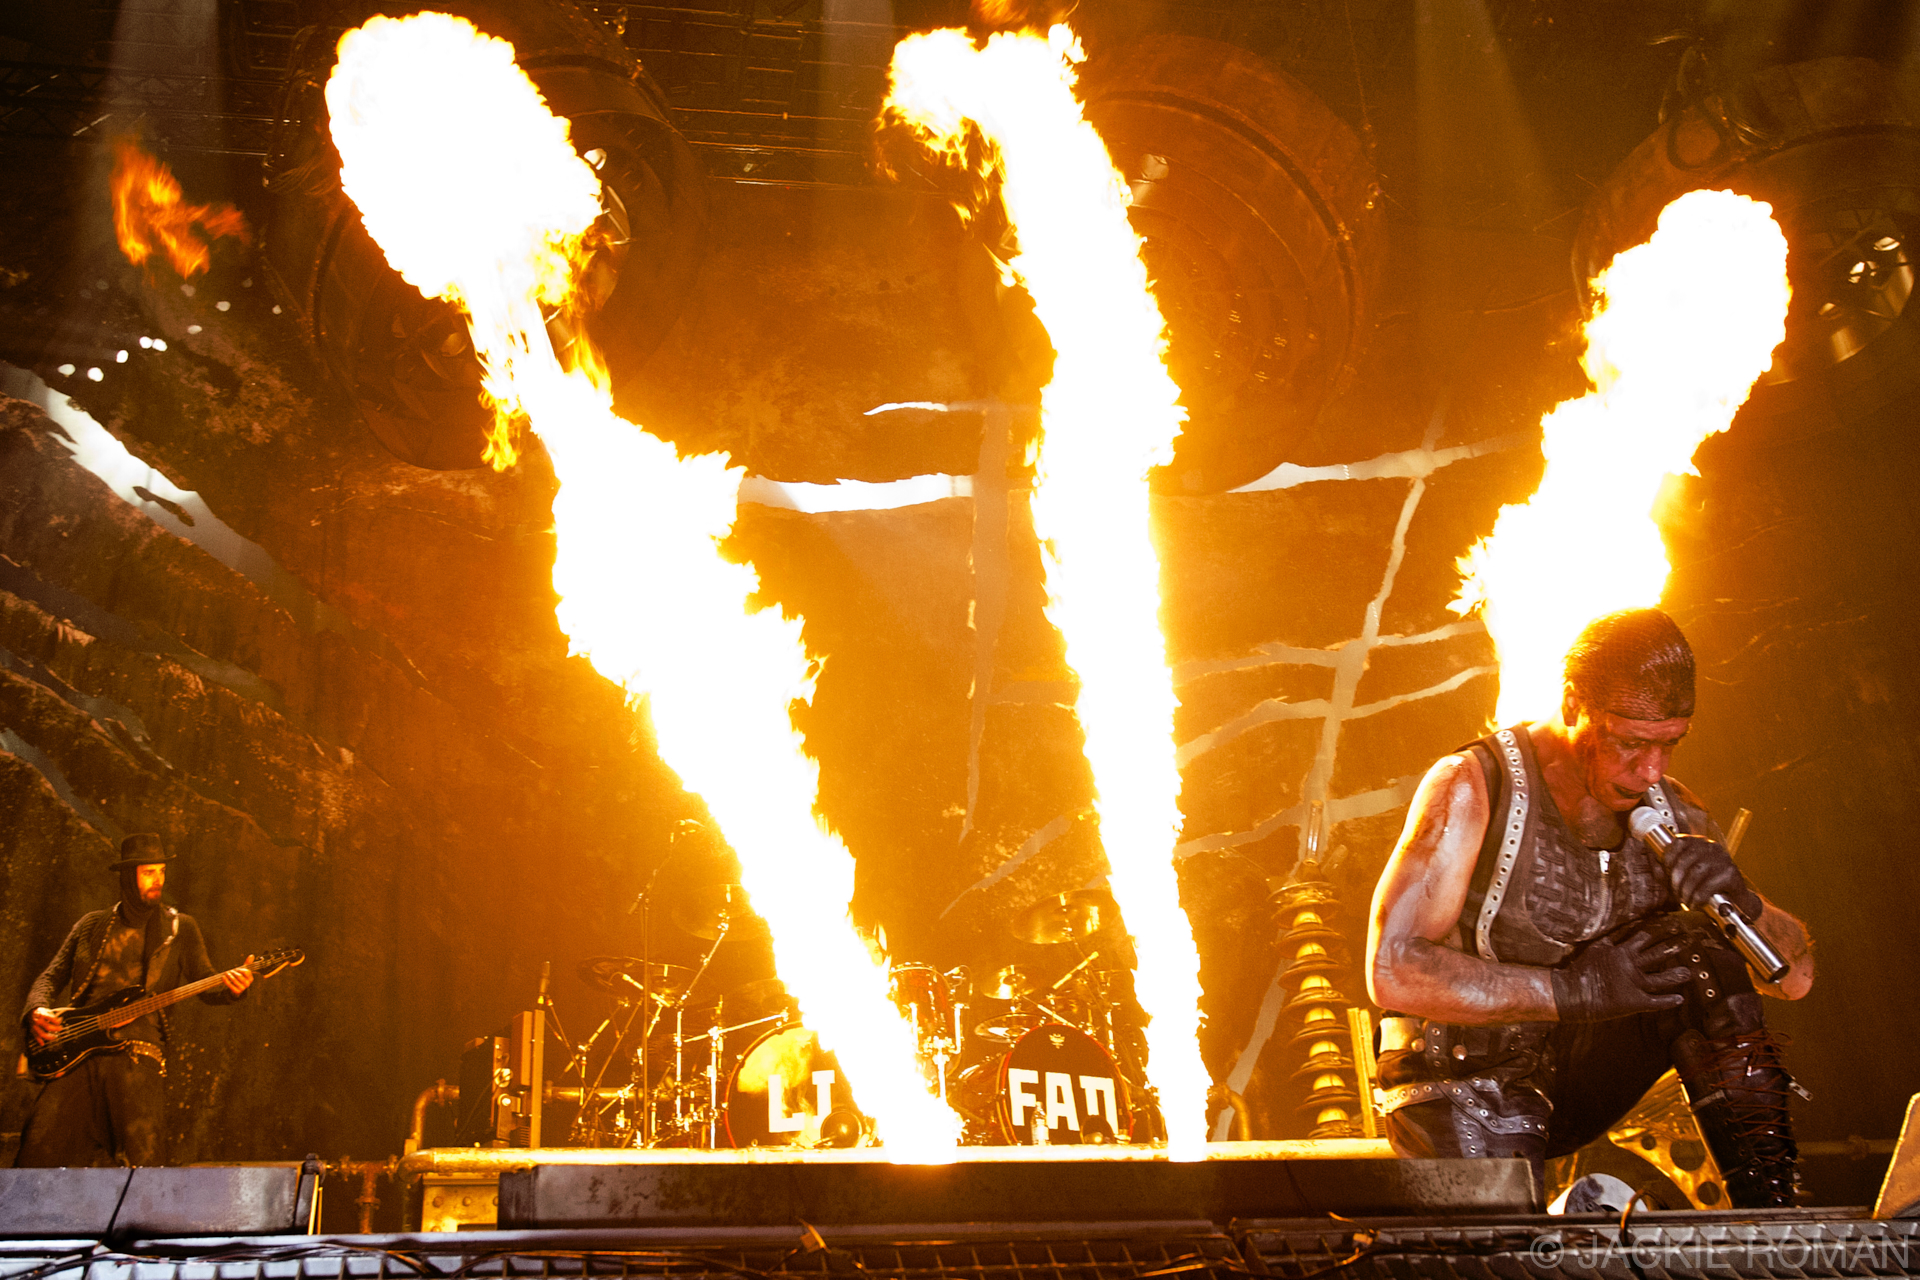 Rammstein performing at Madison Square Garden, New York, December 11, 2010.